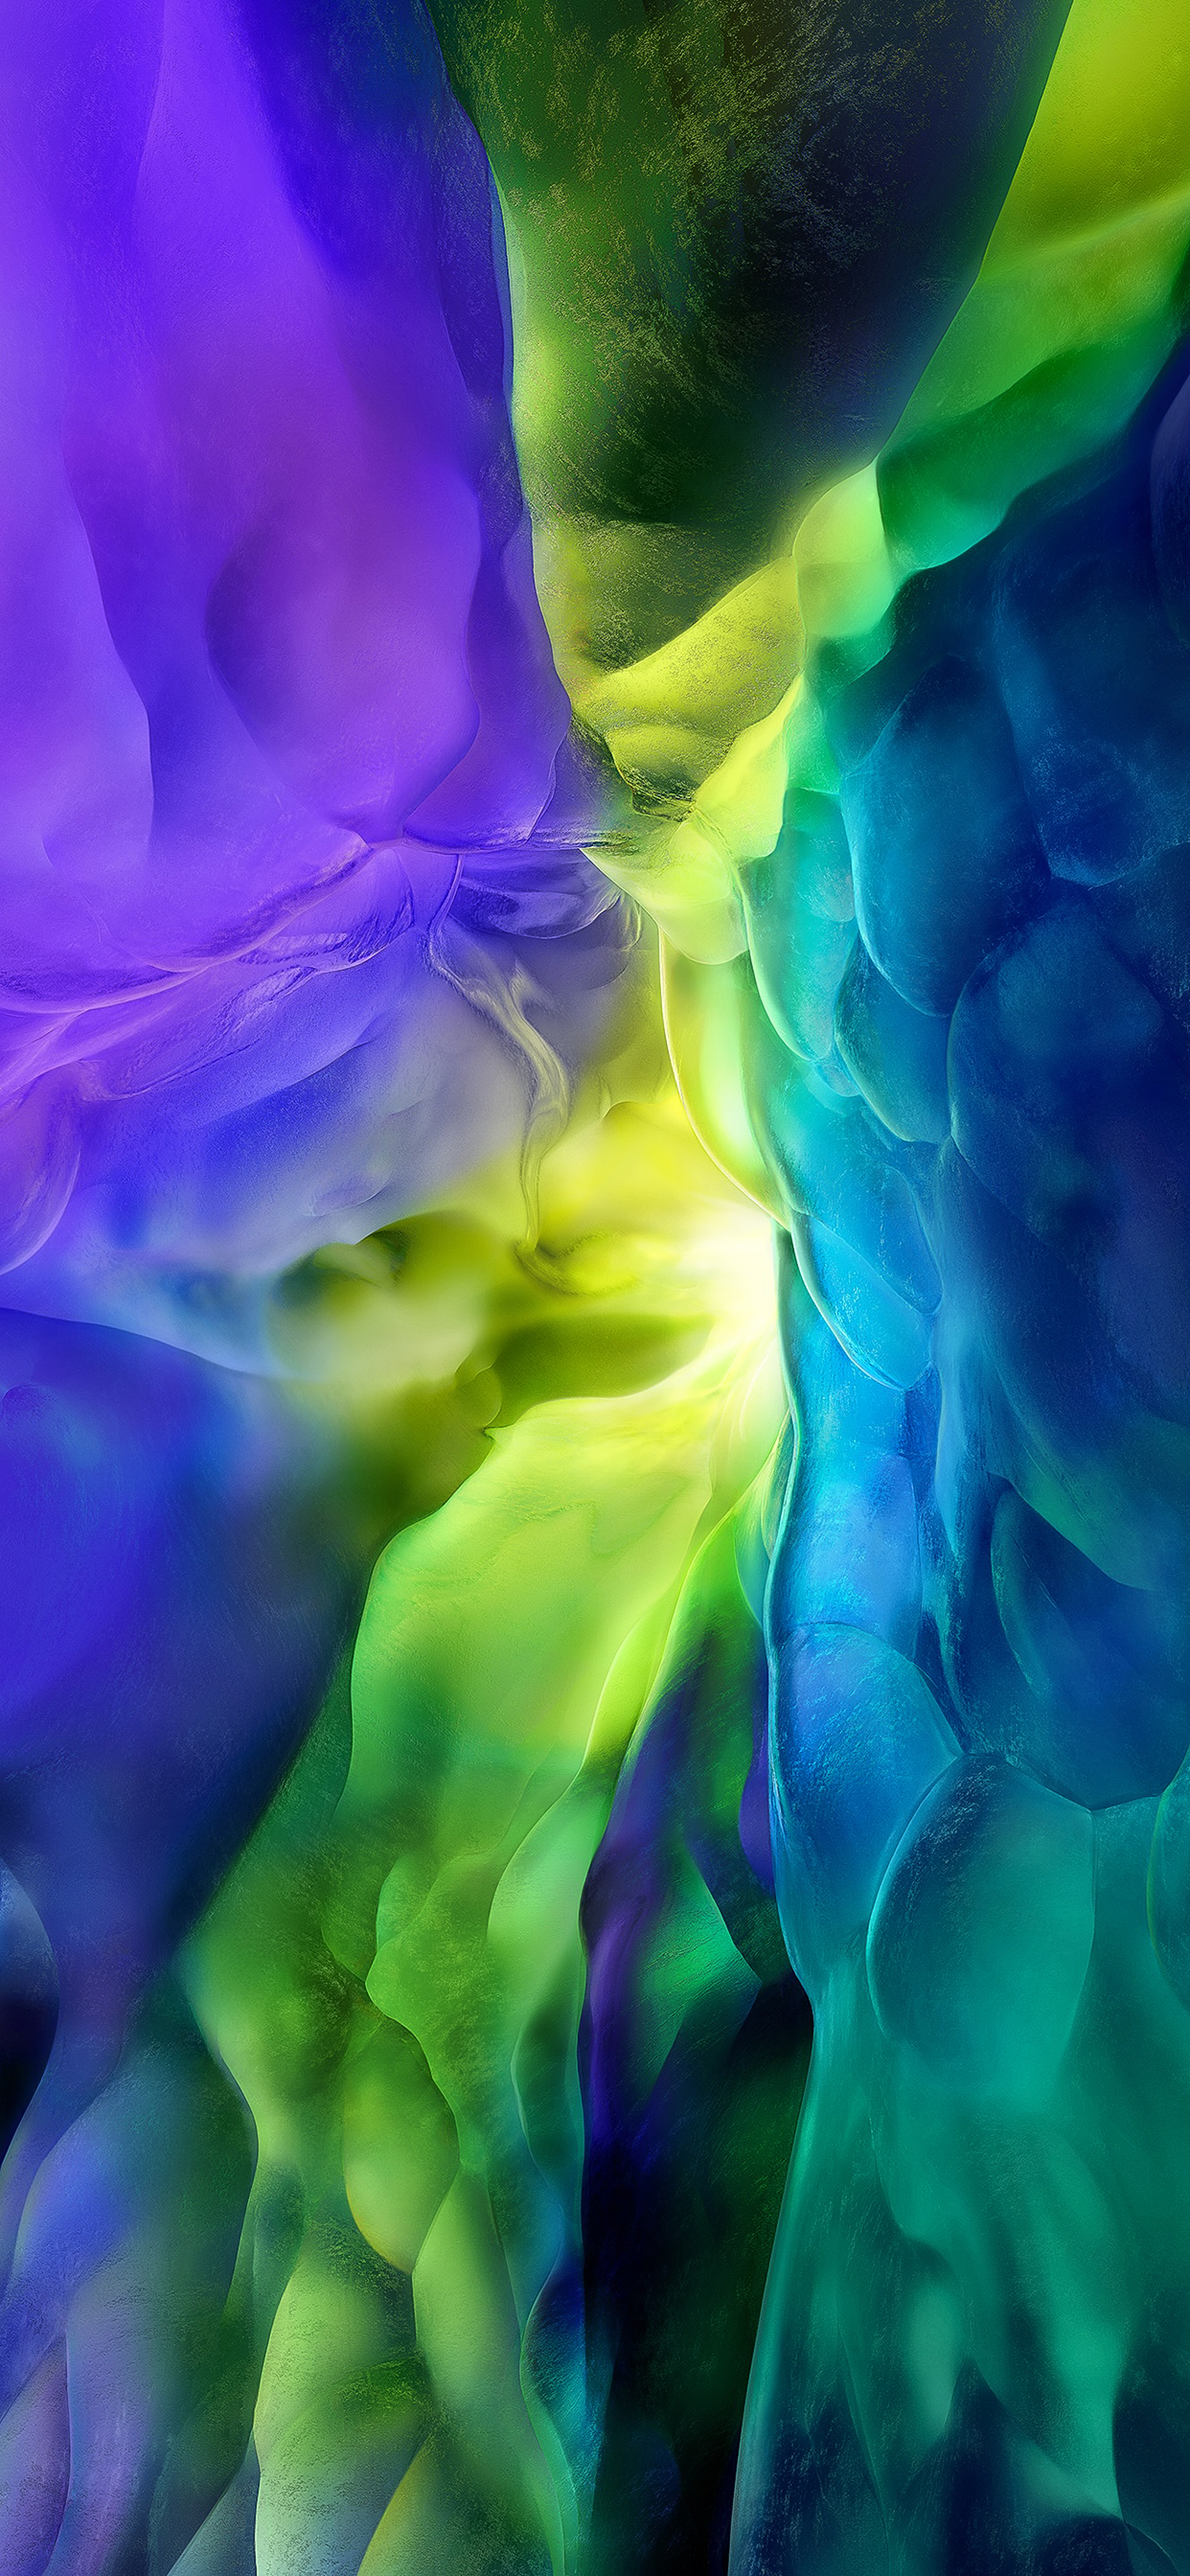 Pin by Ben Kris on Wallpapers in 2020 Iphone wallpaper